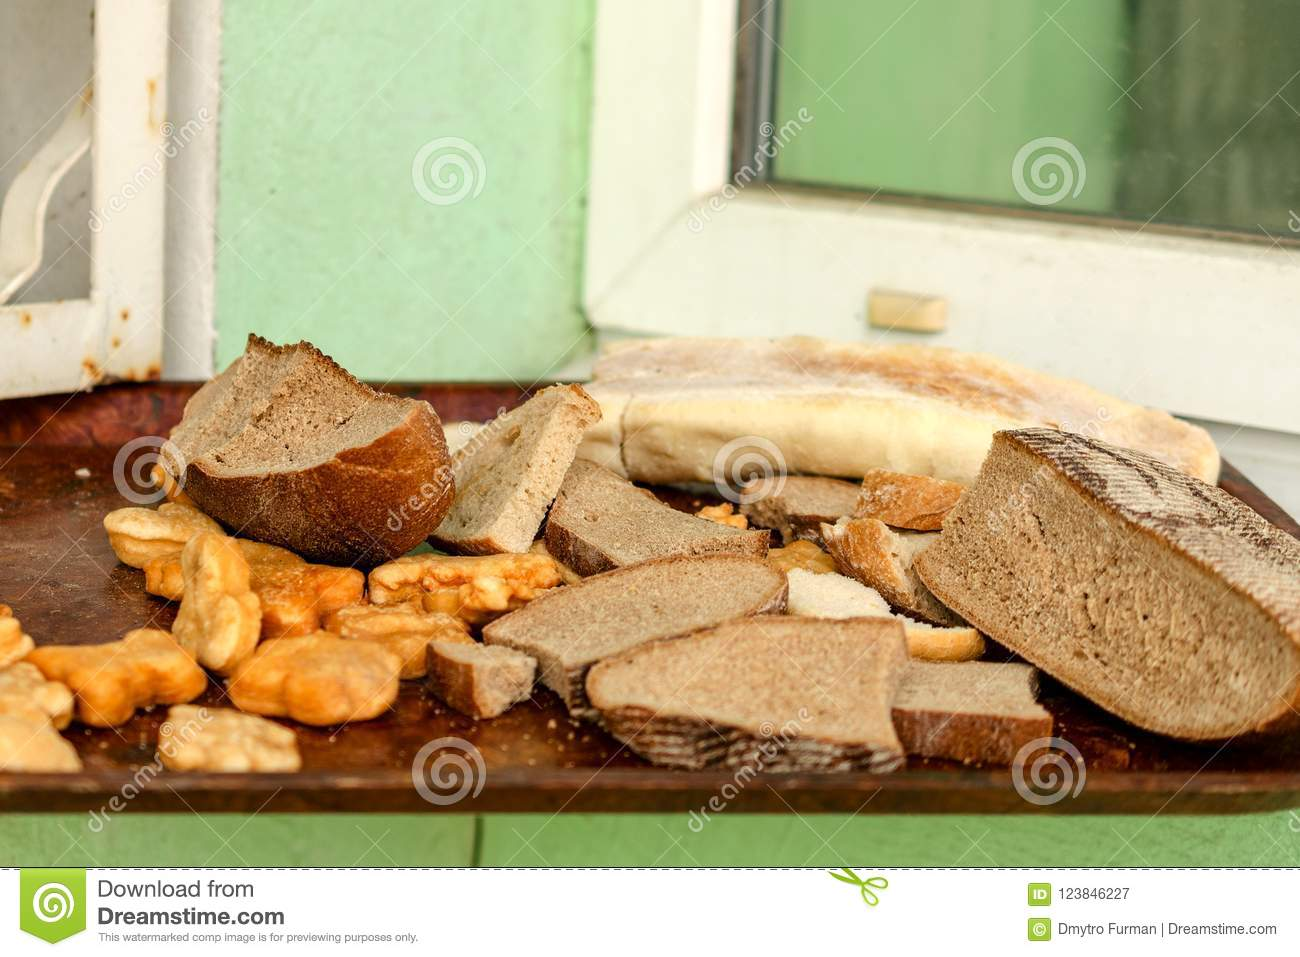 Pile Of Many Slices Of Stale Bread And Other Stale Baked